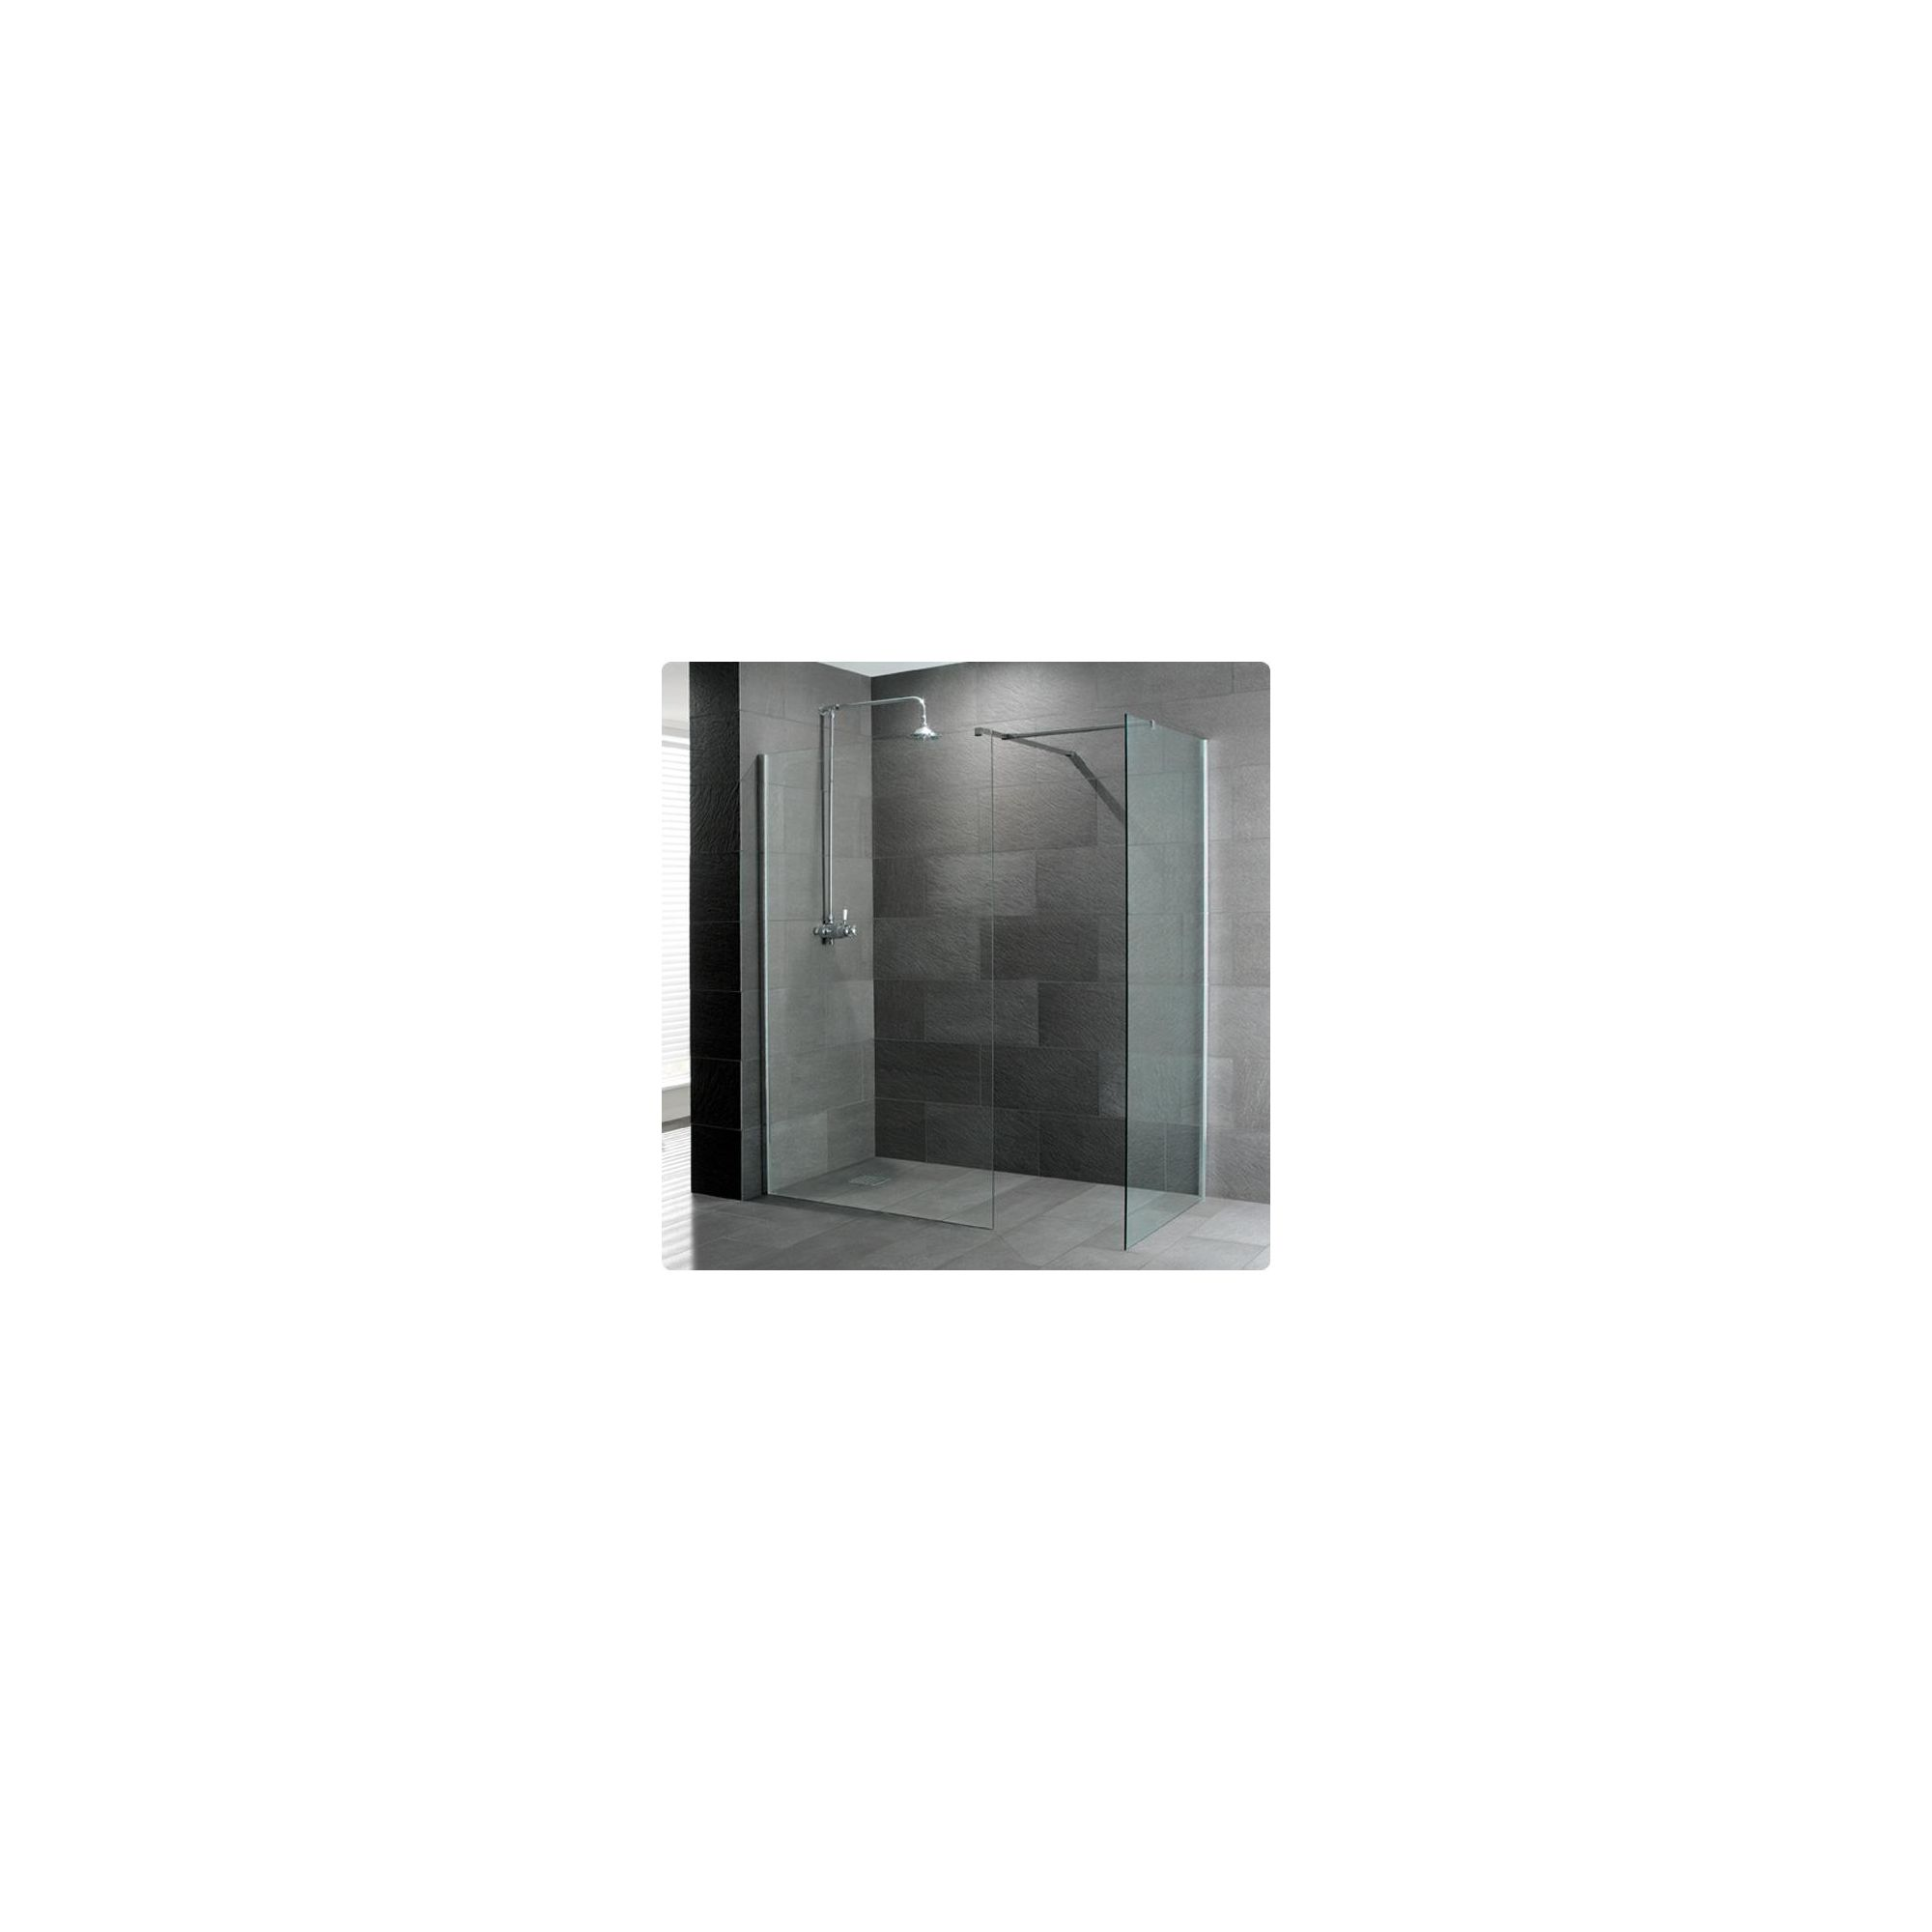 Duchy Supreme Silver Walk-In Shower Enclosure 1700mm x 760mm, Standard Tray, 8mm Glass at Tesco Direct